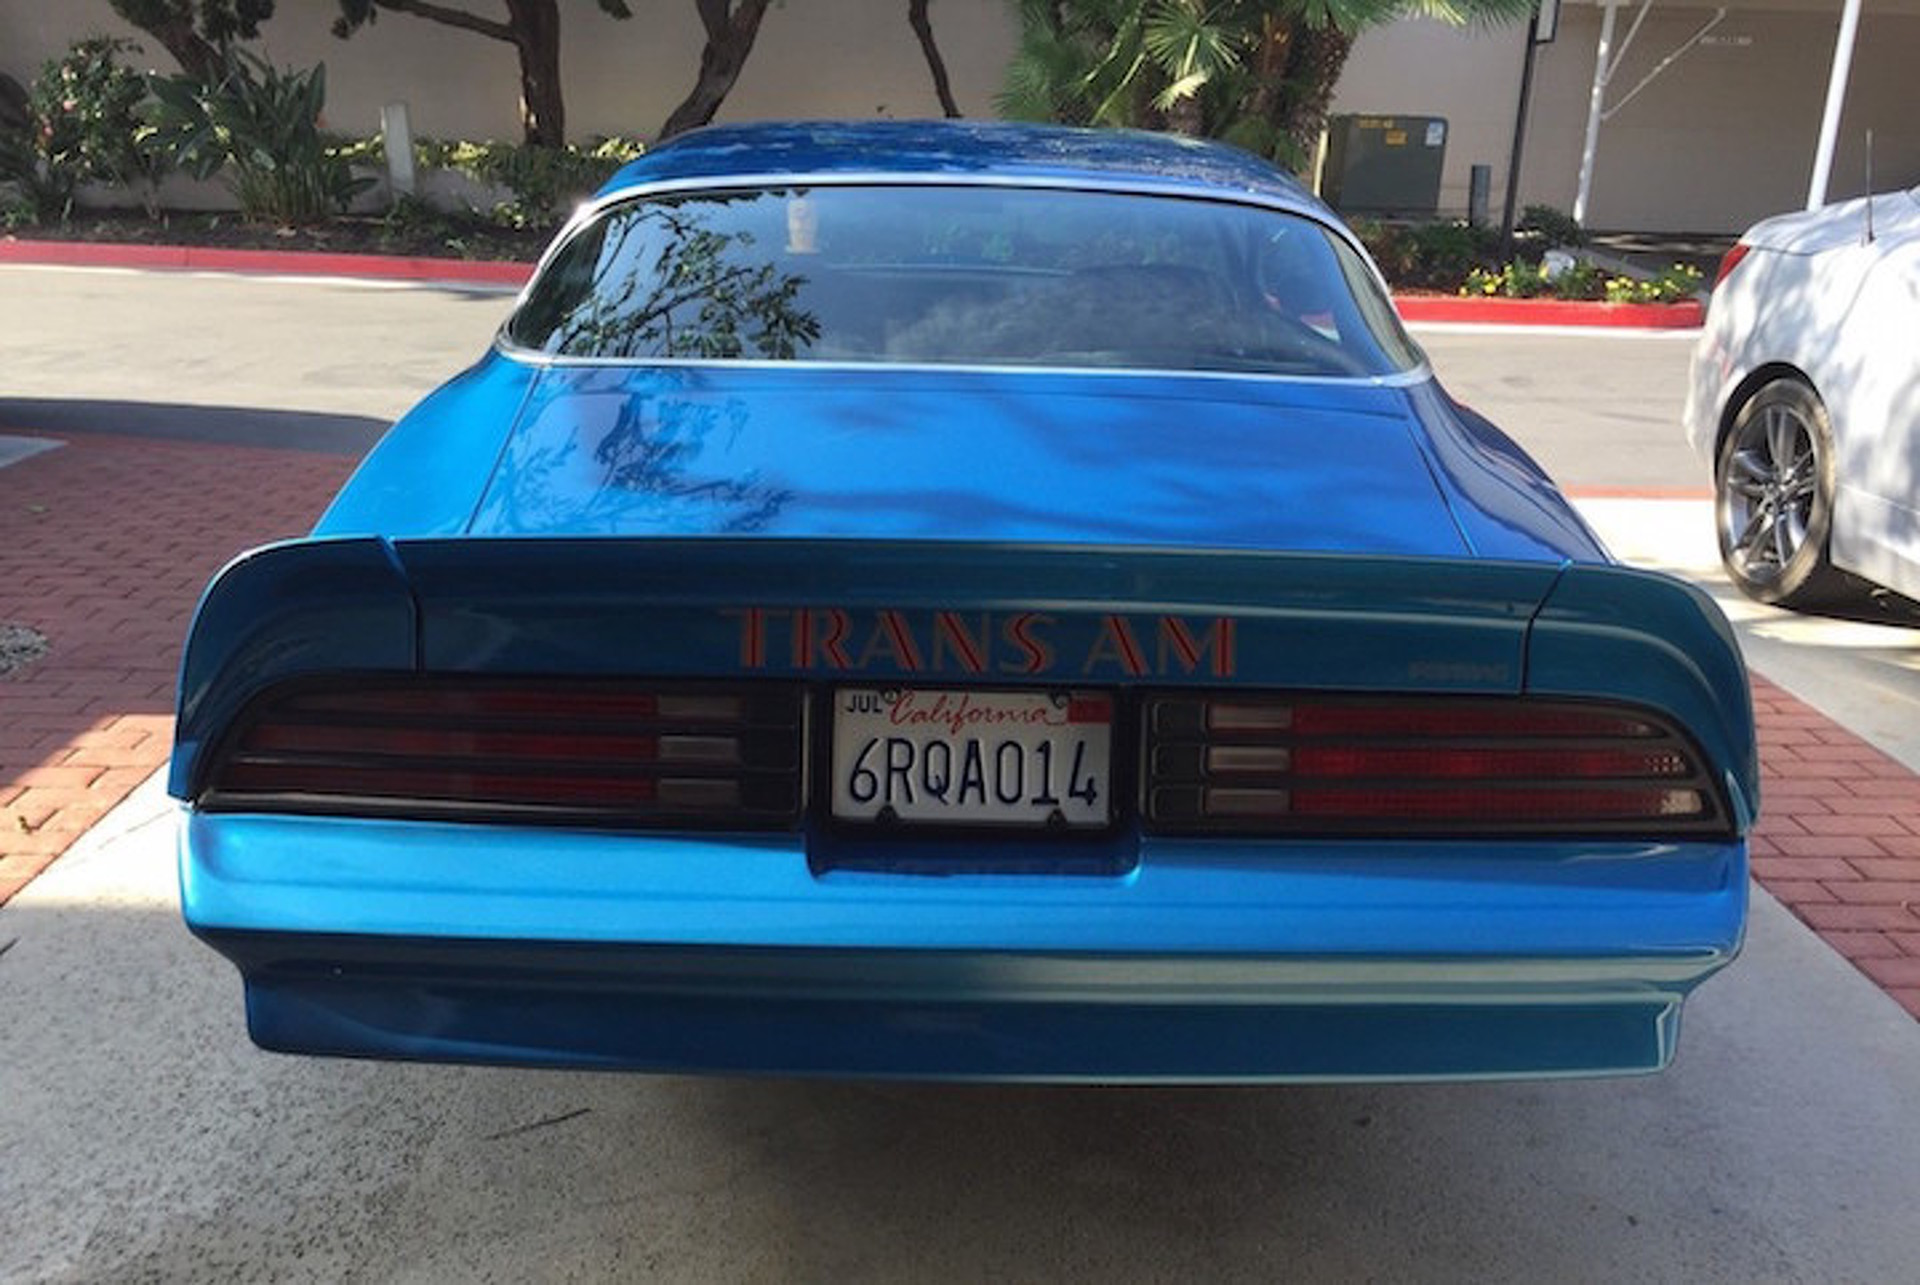 Brilliant Blue 1978 Pontiac Trans Am Needs a New Home